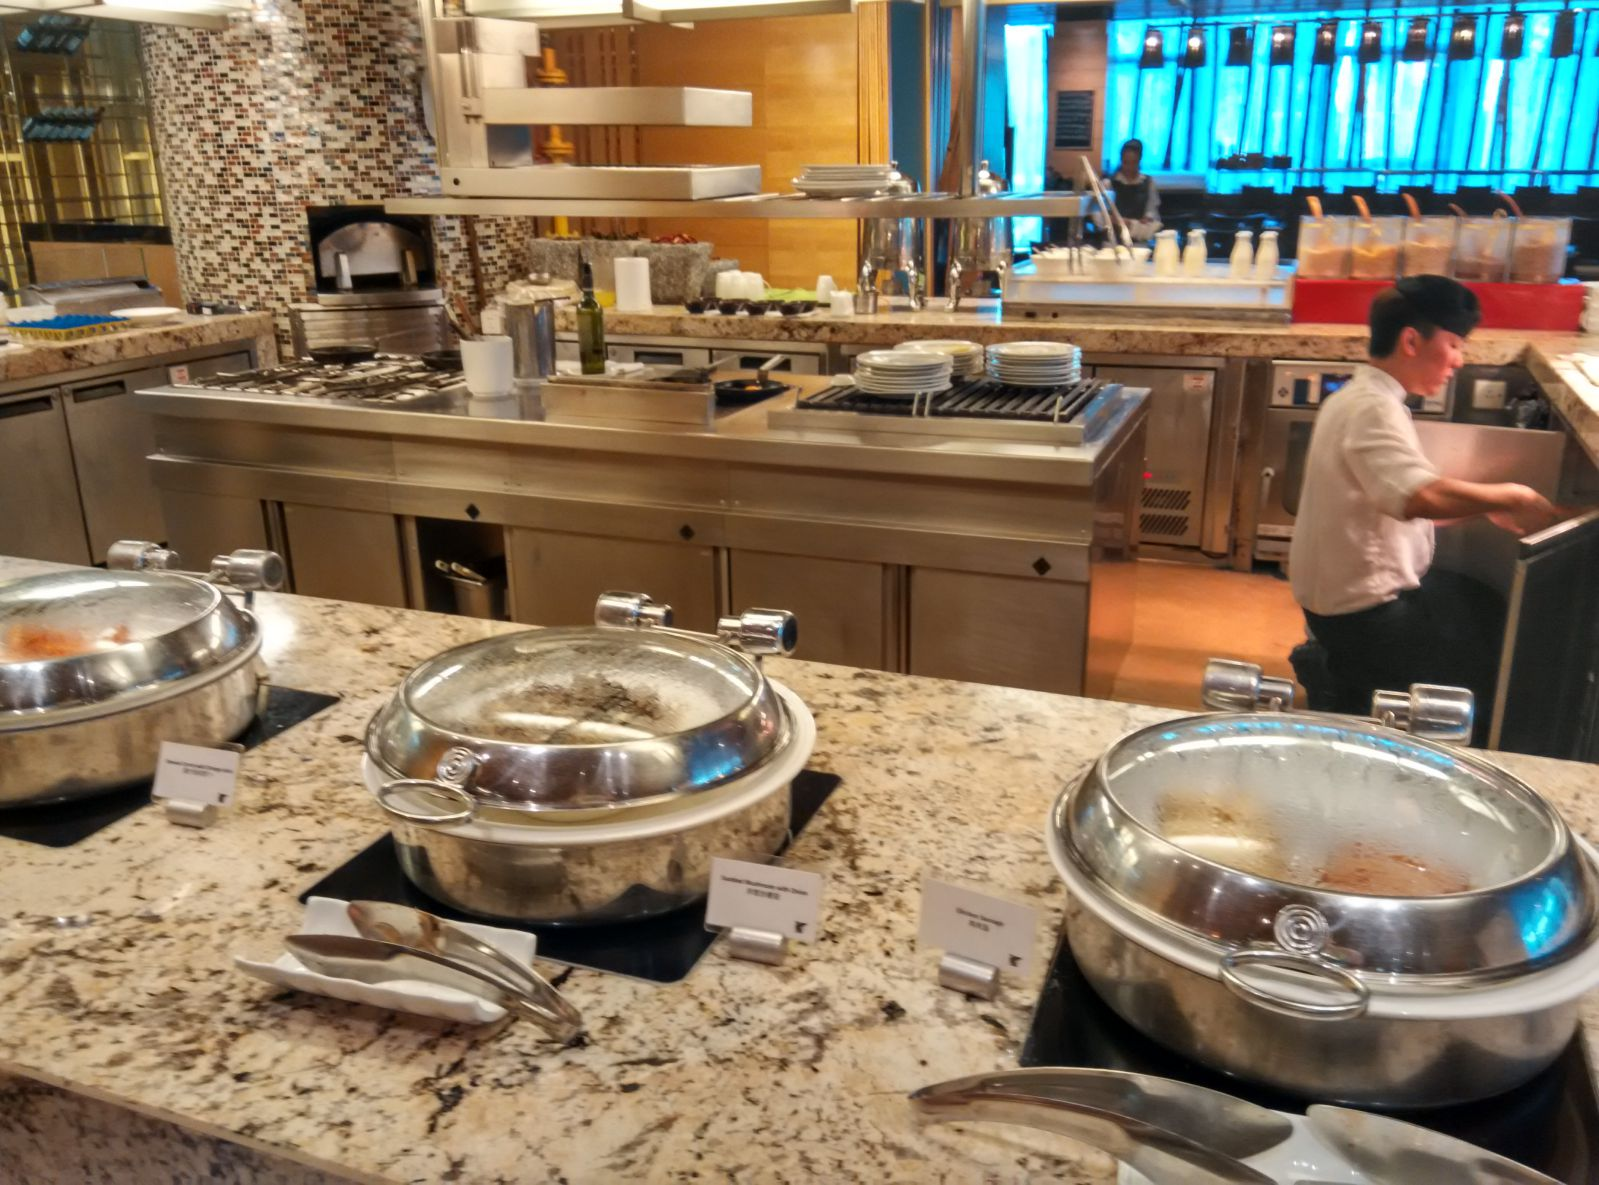 shenzhen-jw-marriott-breakfast-4